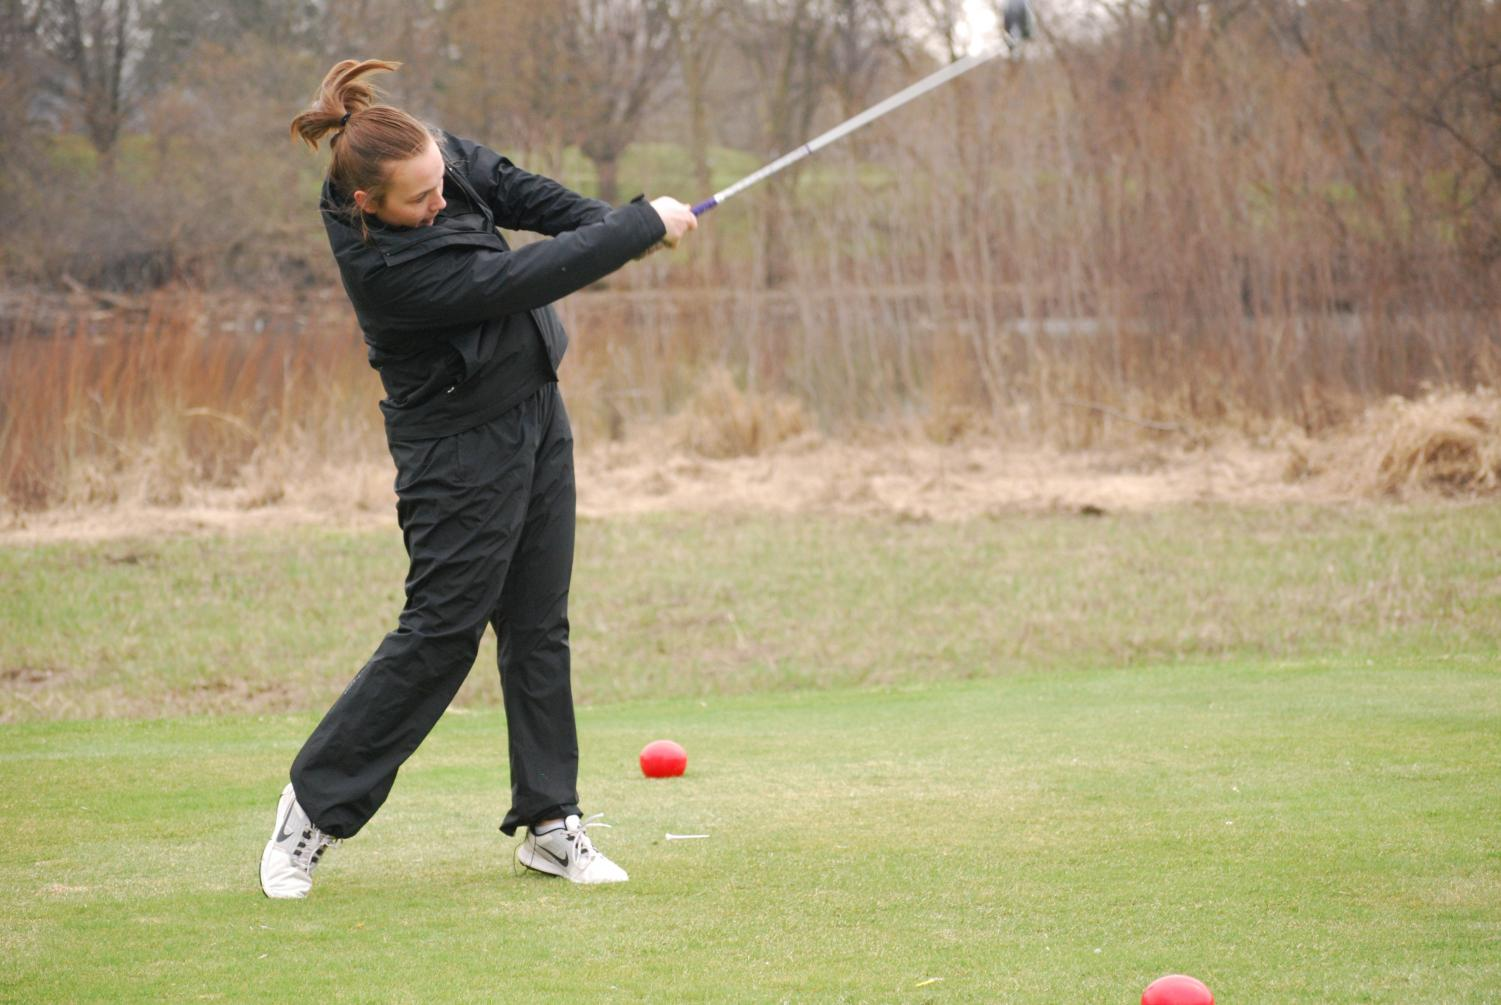 Senior Carly Livingston hits the golf ball at a golf match at Theodore Worth Park. The 2018 season will begin at the end of March.